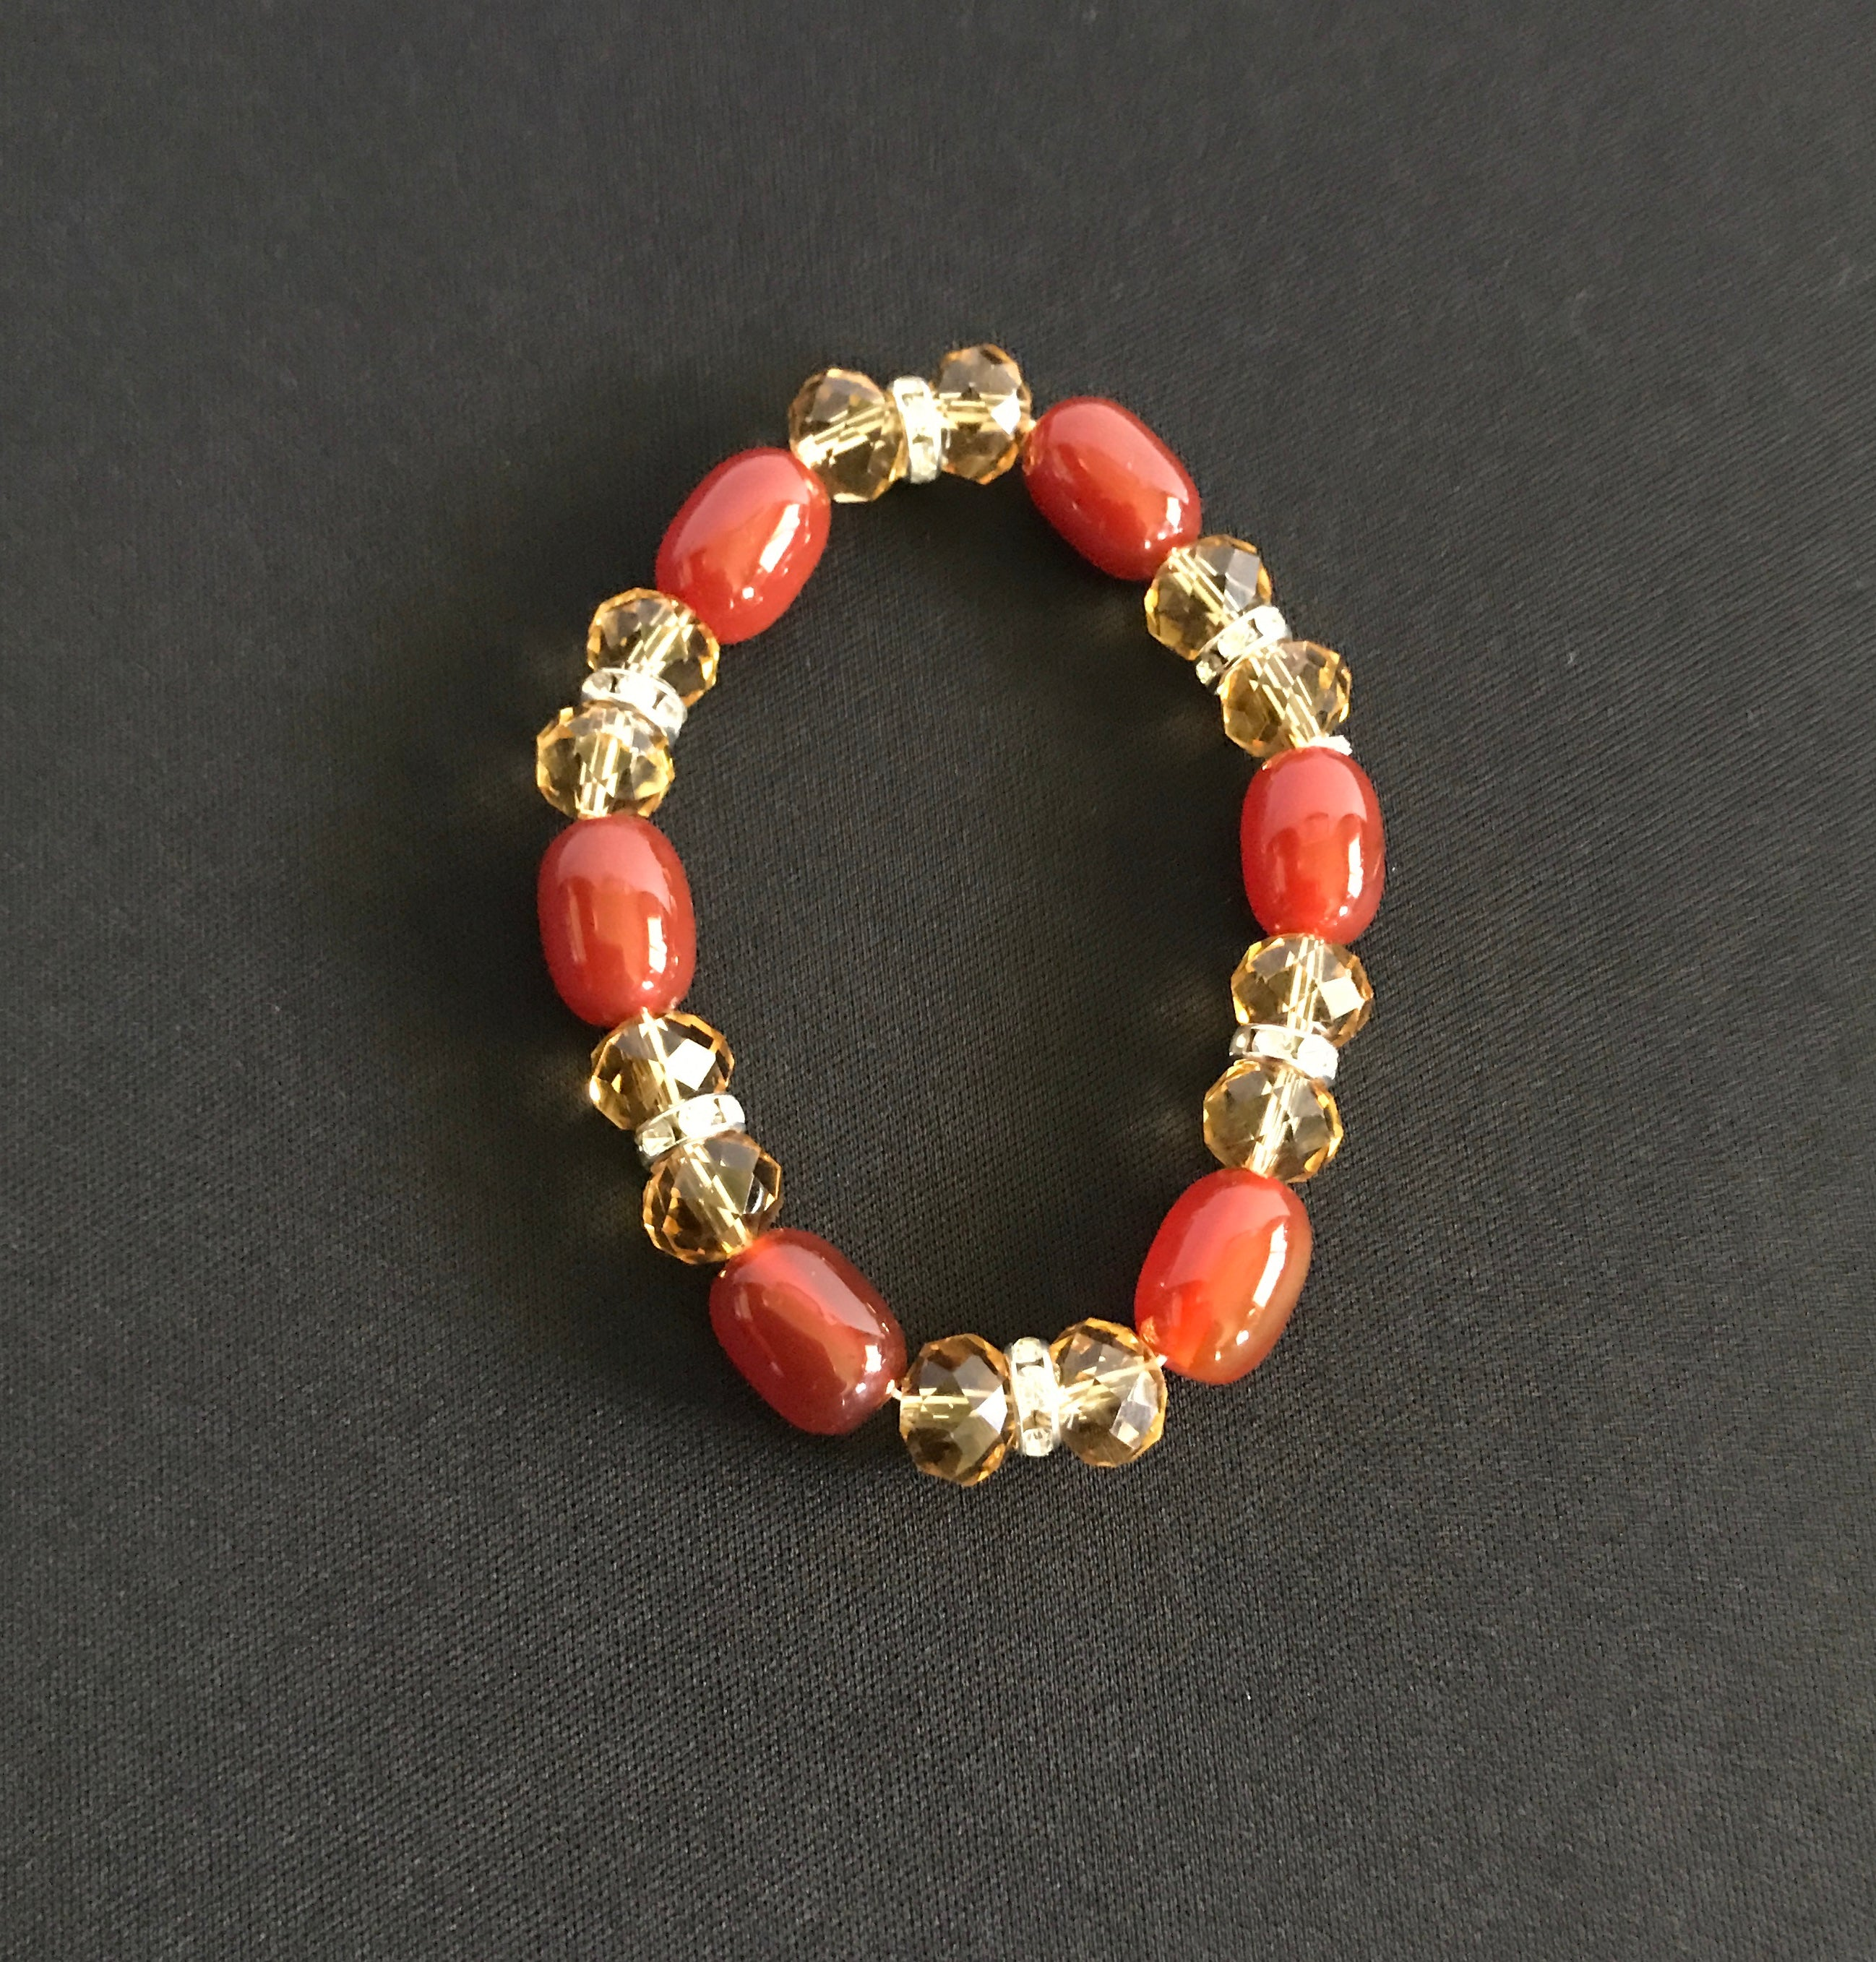 Women's Stretch Bracelet